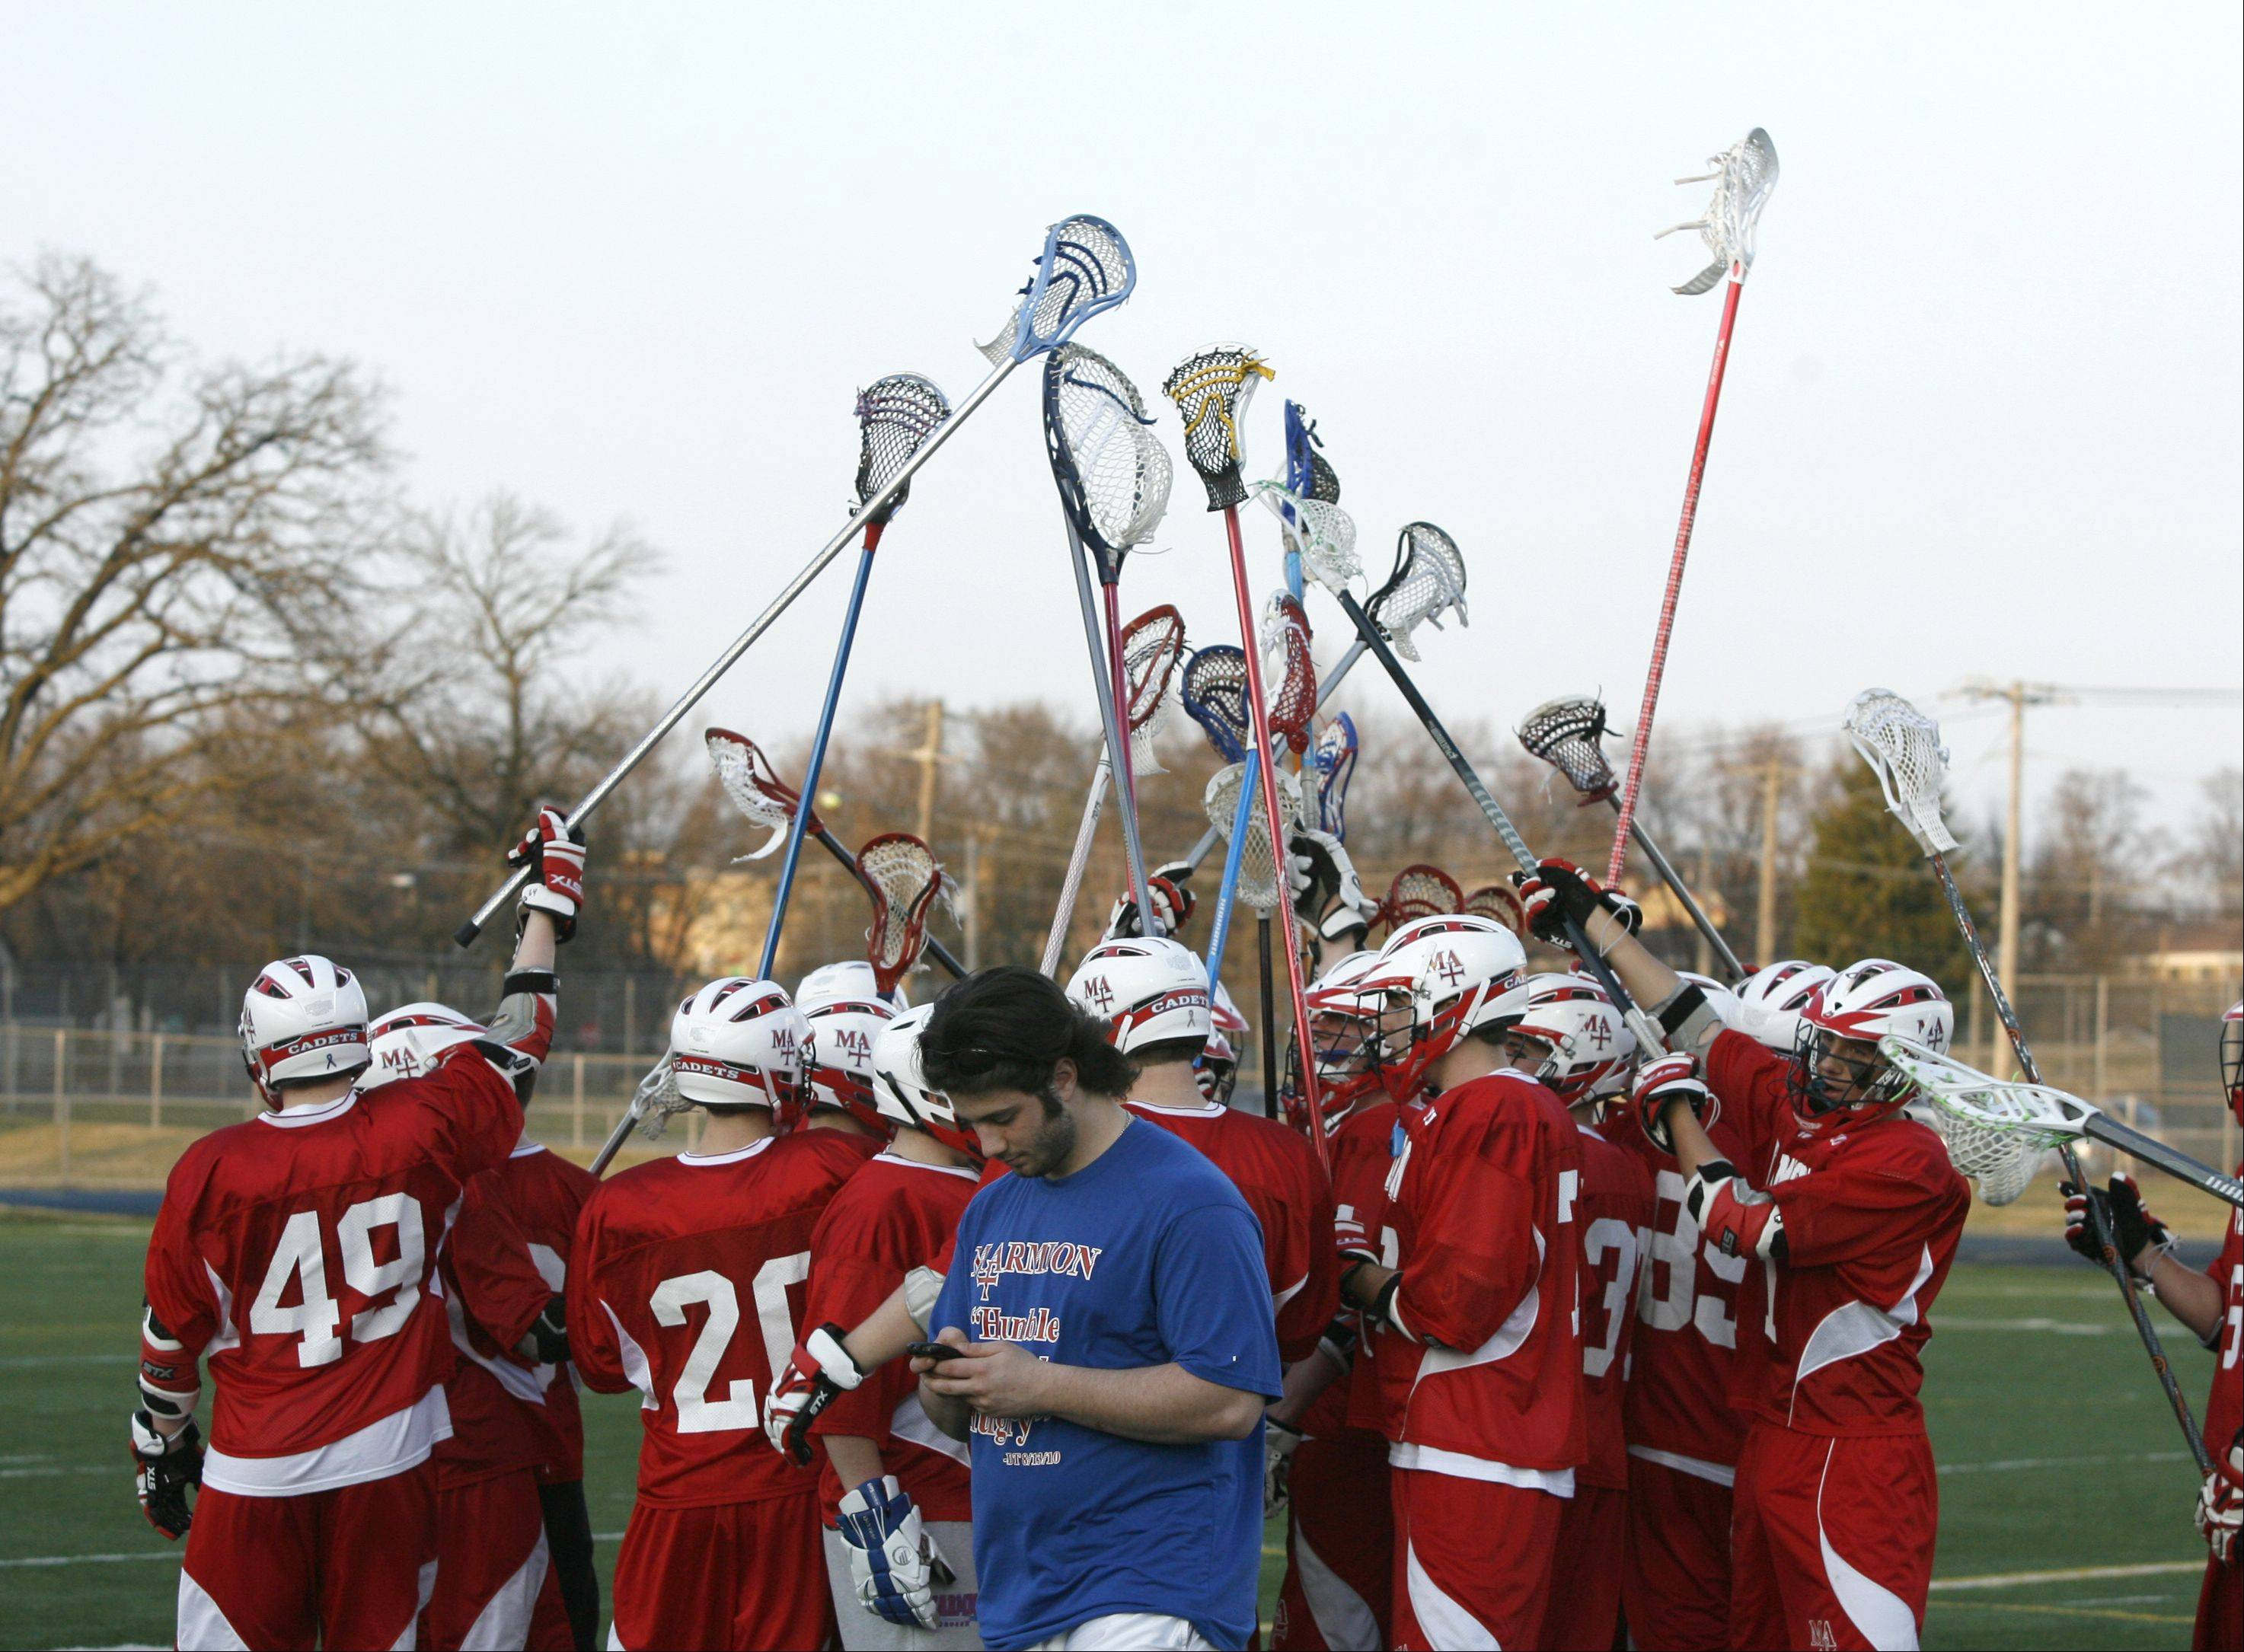 West Chicago hosts Marmion Academy Friday for boys lacrosse.